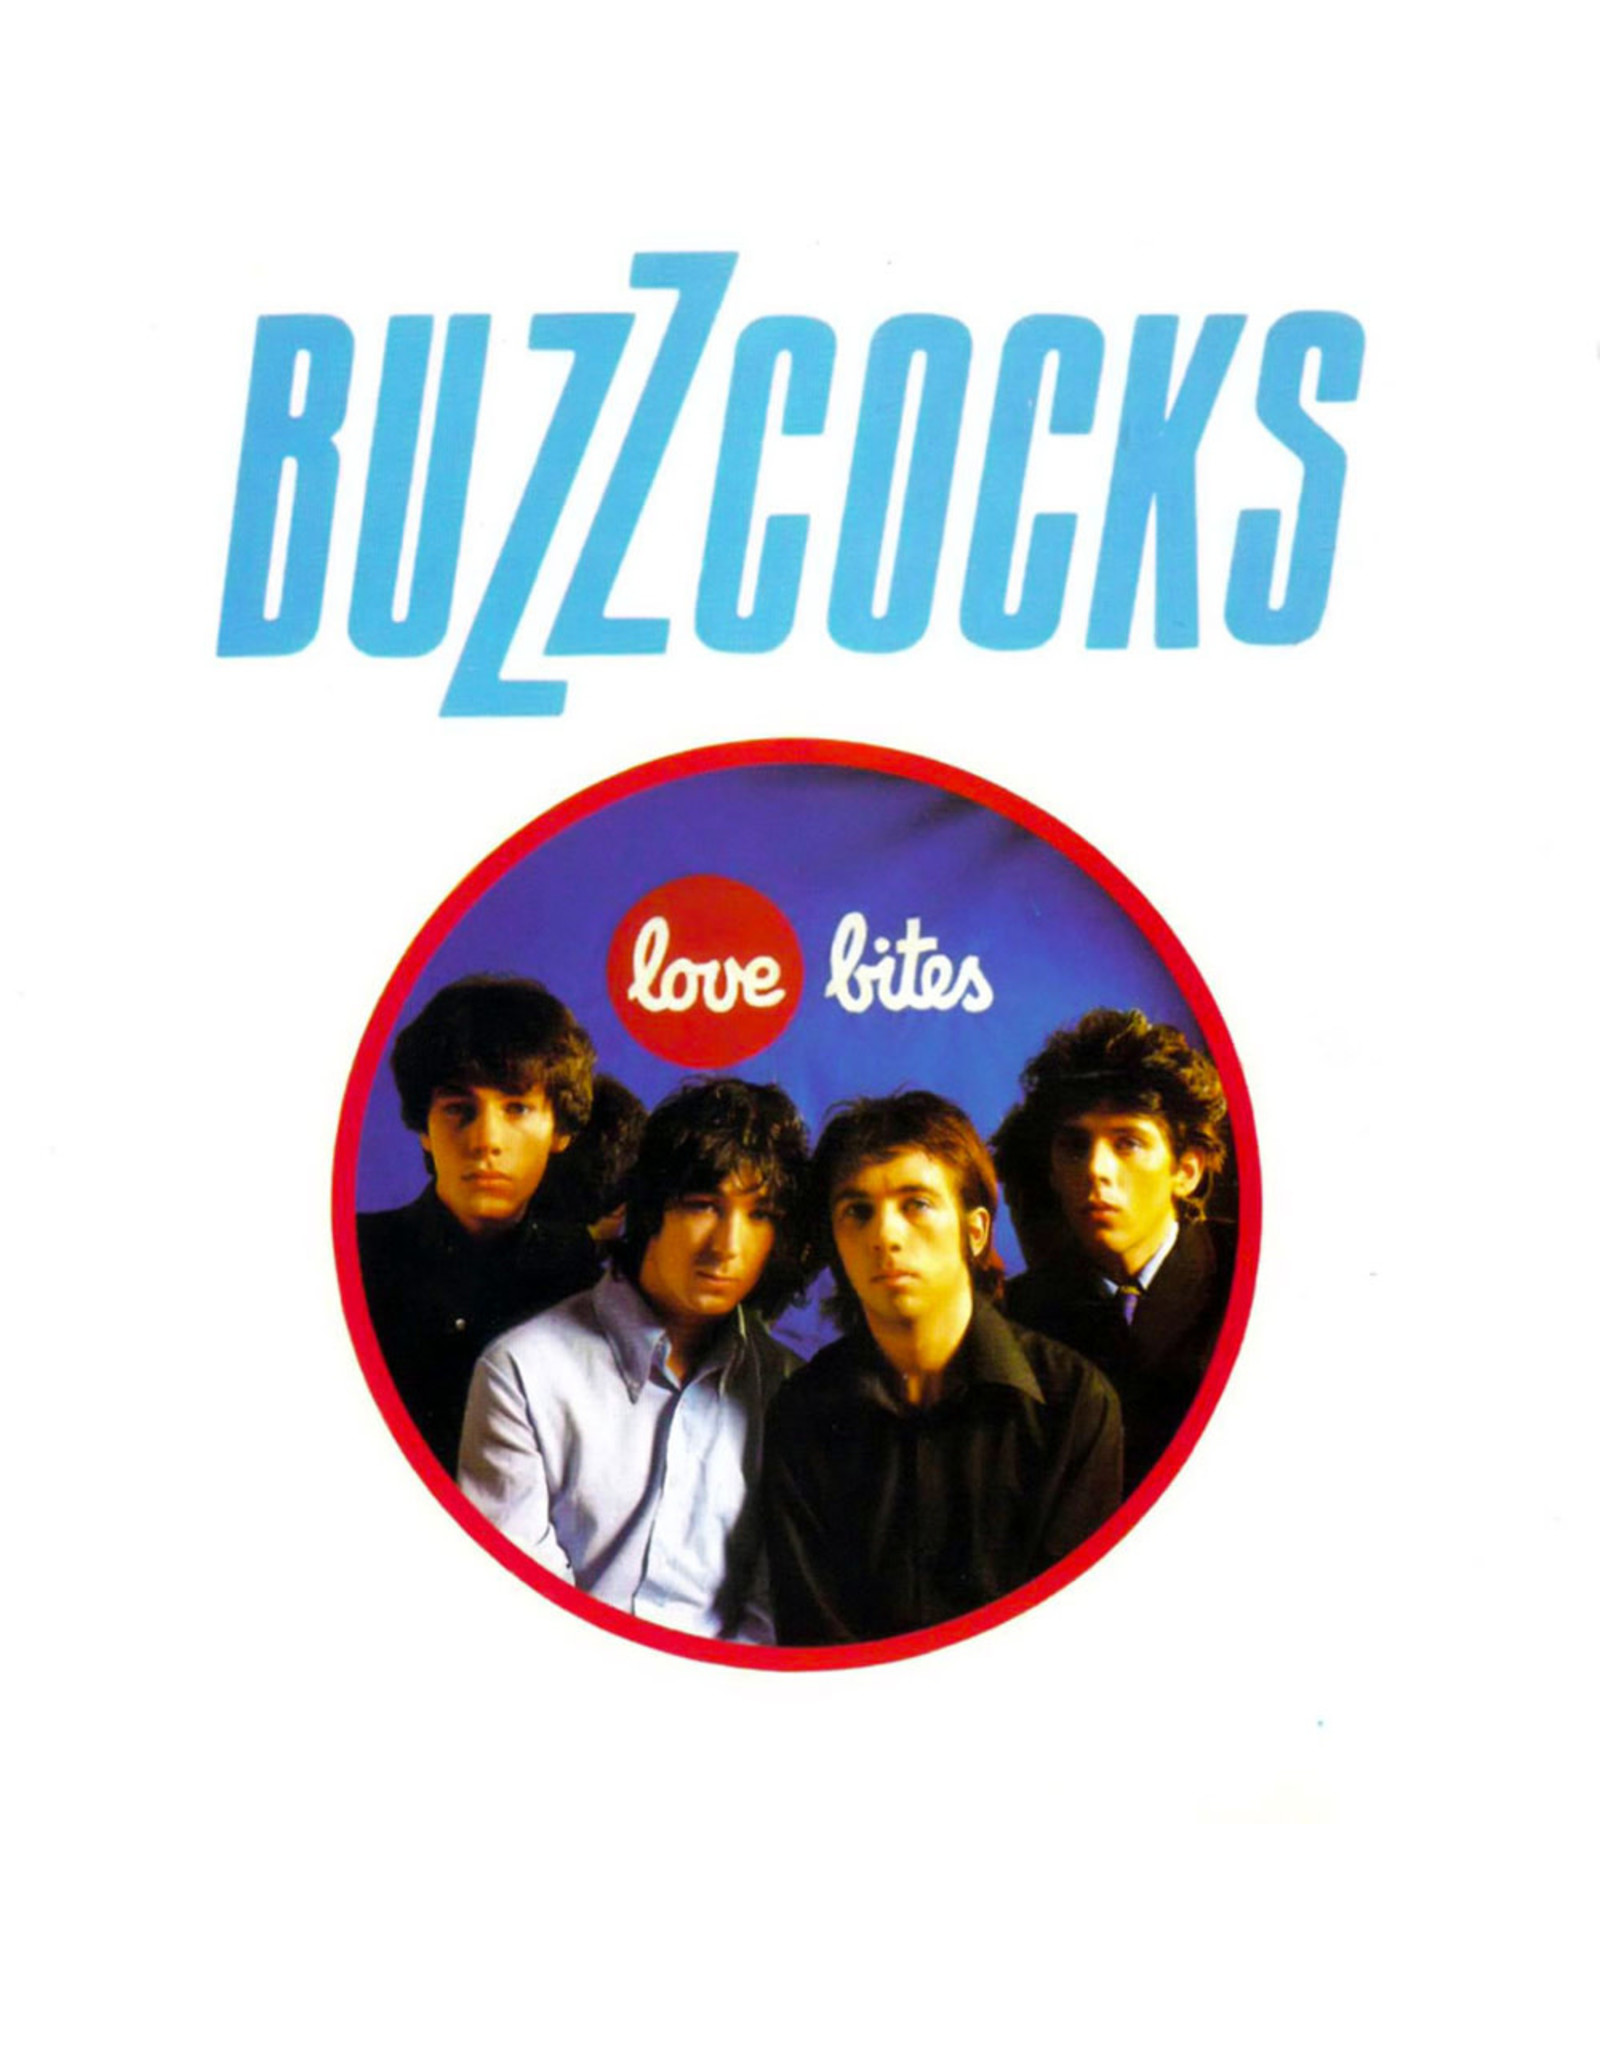 Buzzcocks - Love Bites (Deluxe White Vinyl)